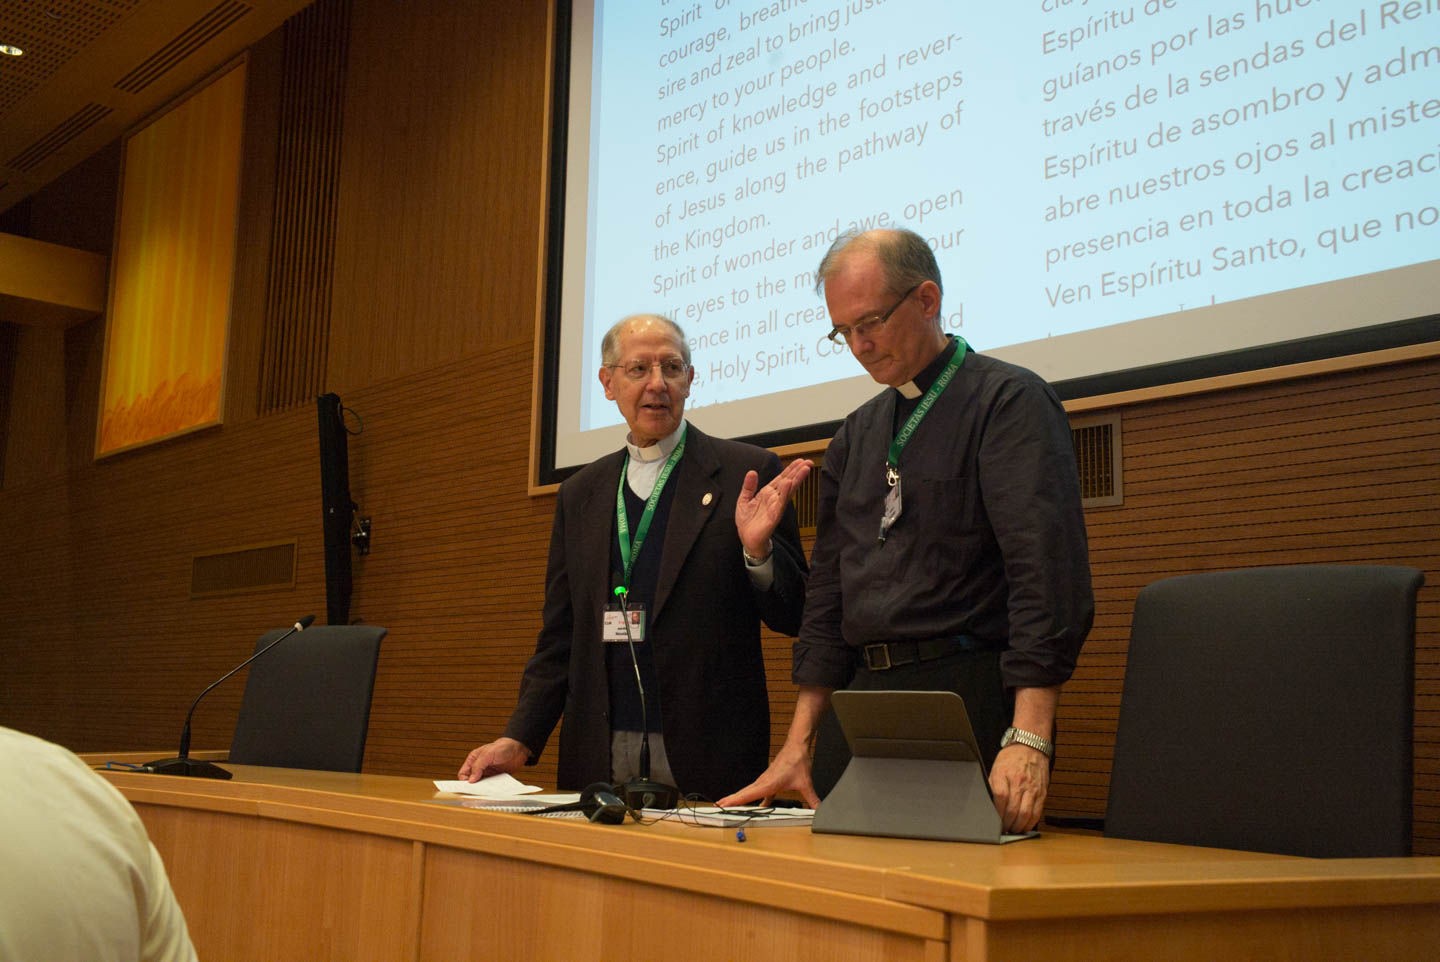 Adolfo Nicolás hands over the meeting to Jim Grummer, SJ, as vicar of GC36. Afterwards, Adolfo took his seat among the delegates for a few session before departing GC36.